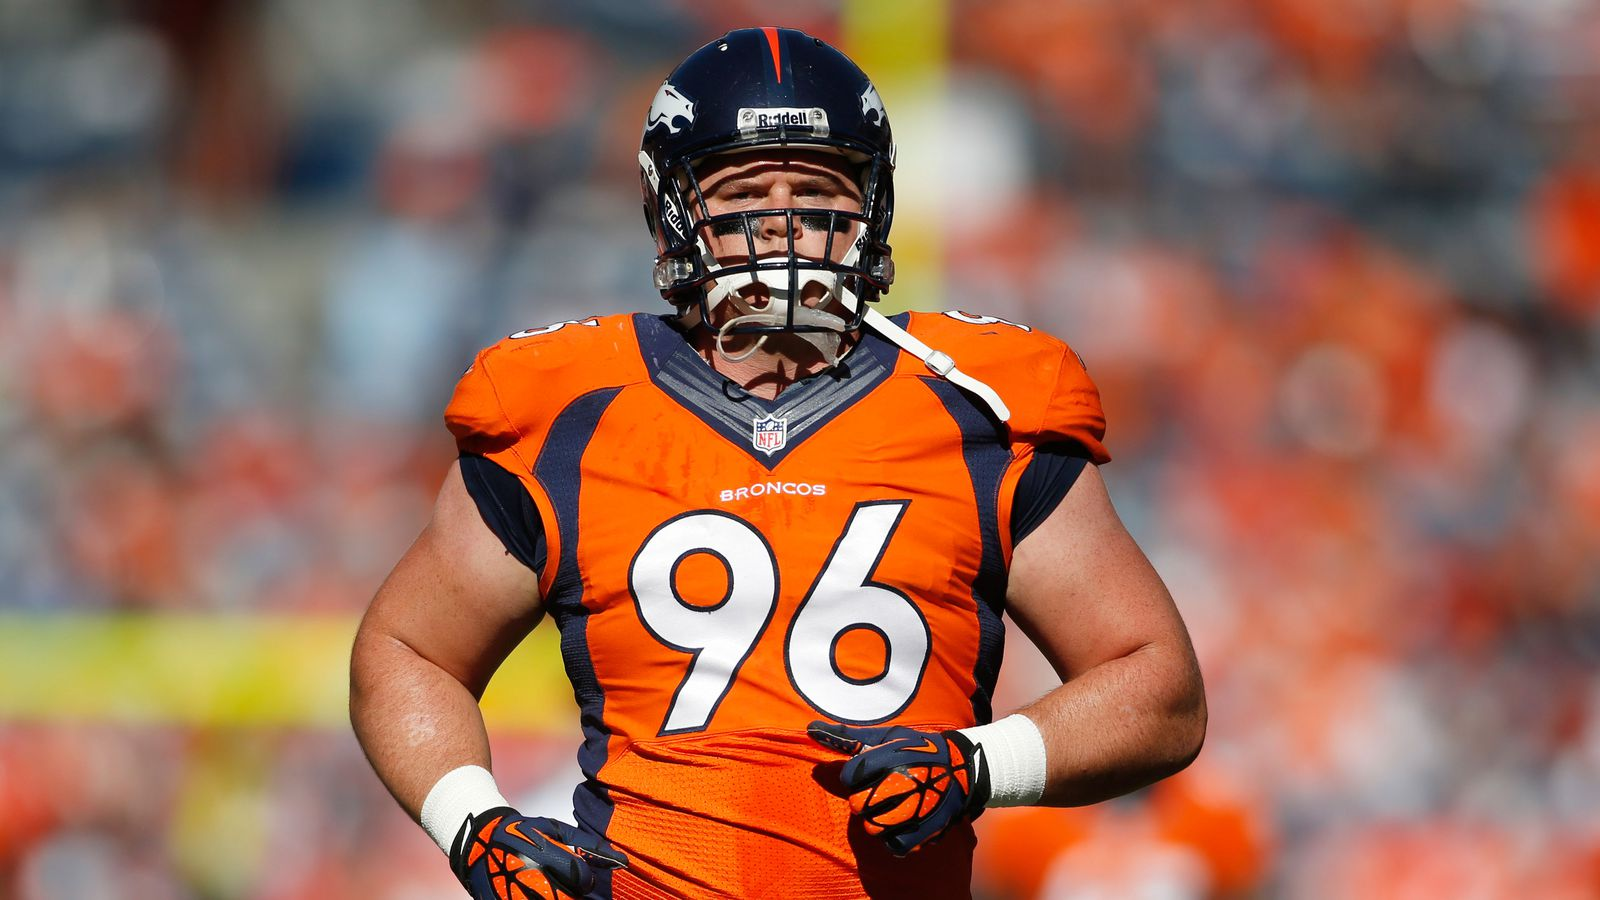 Nike jerseys for Cheap - Chicago Bears sign former Chargers defensive lineman Mitch Unrein ...